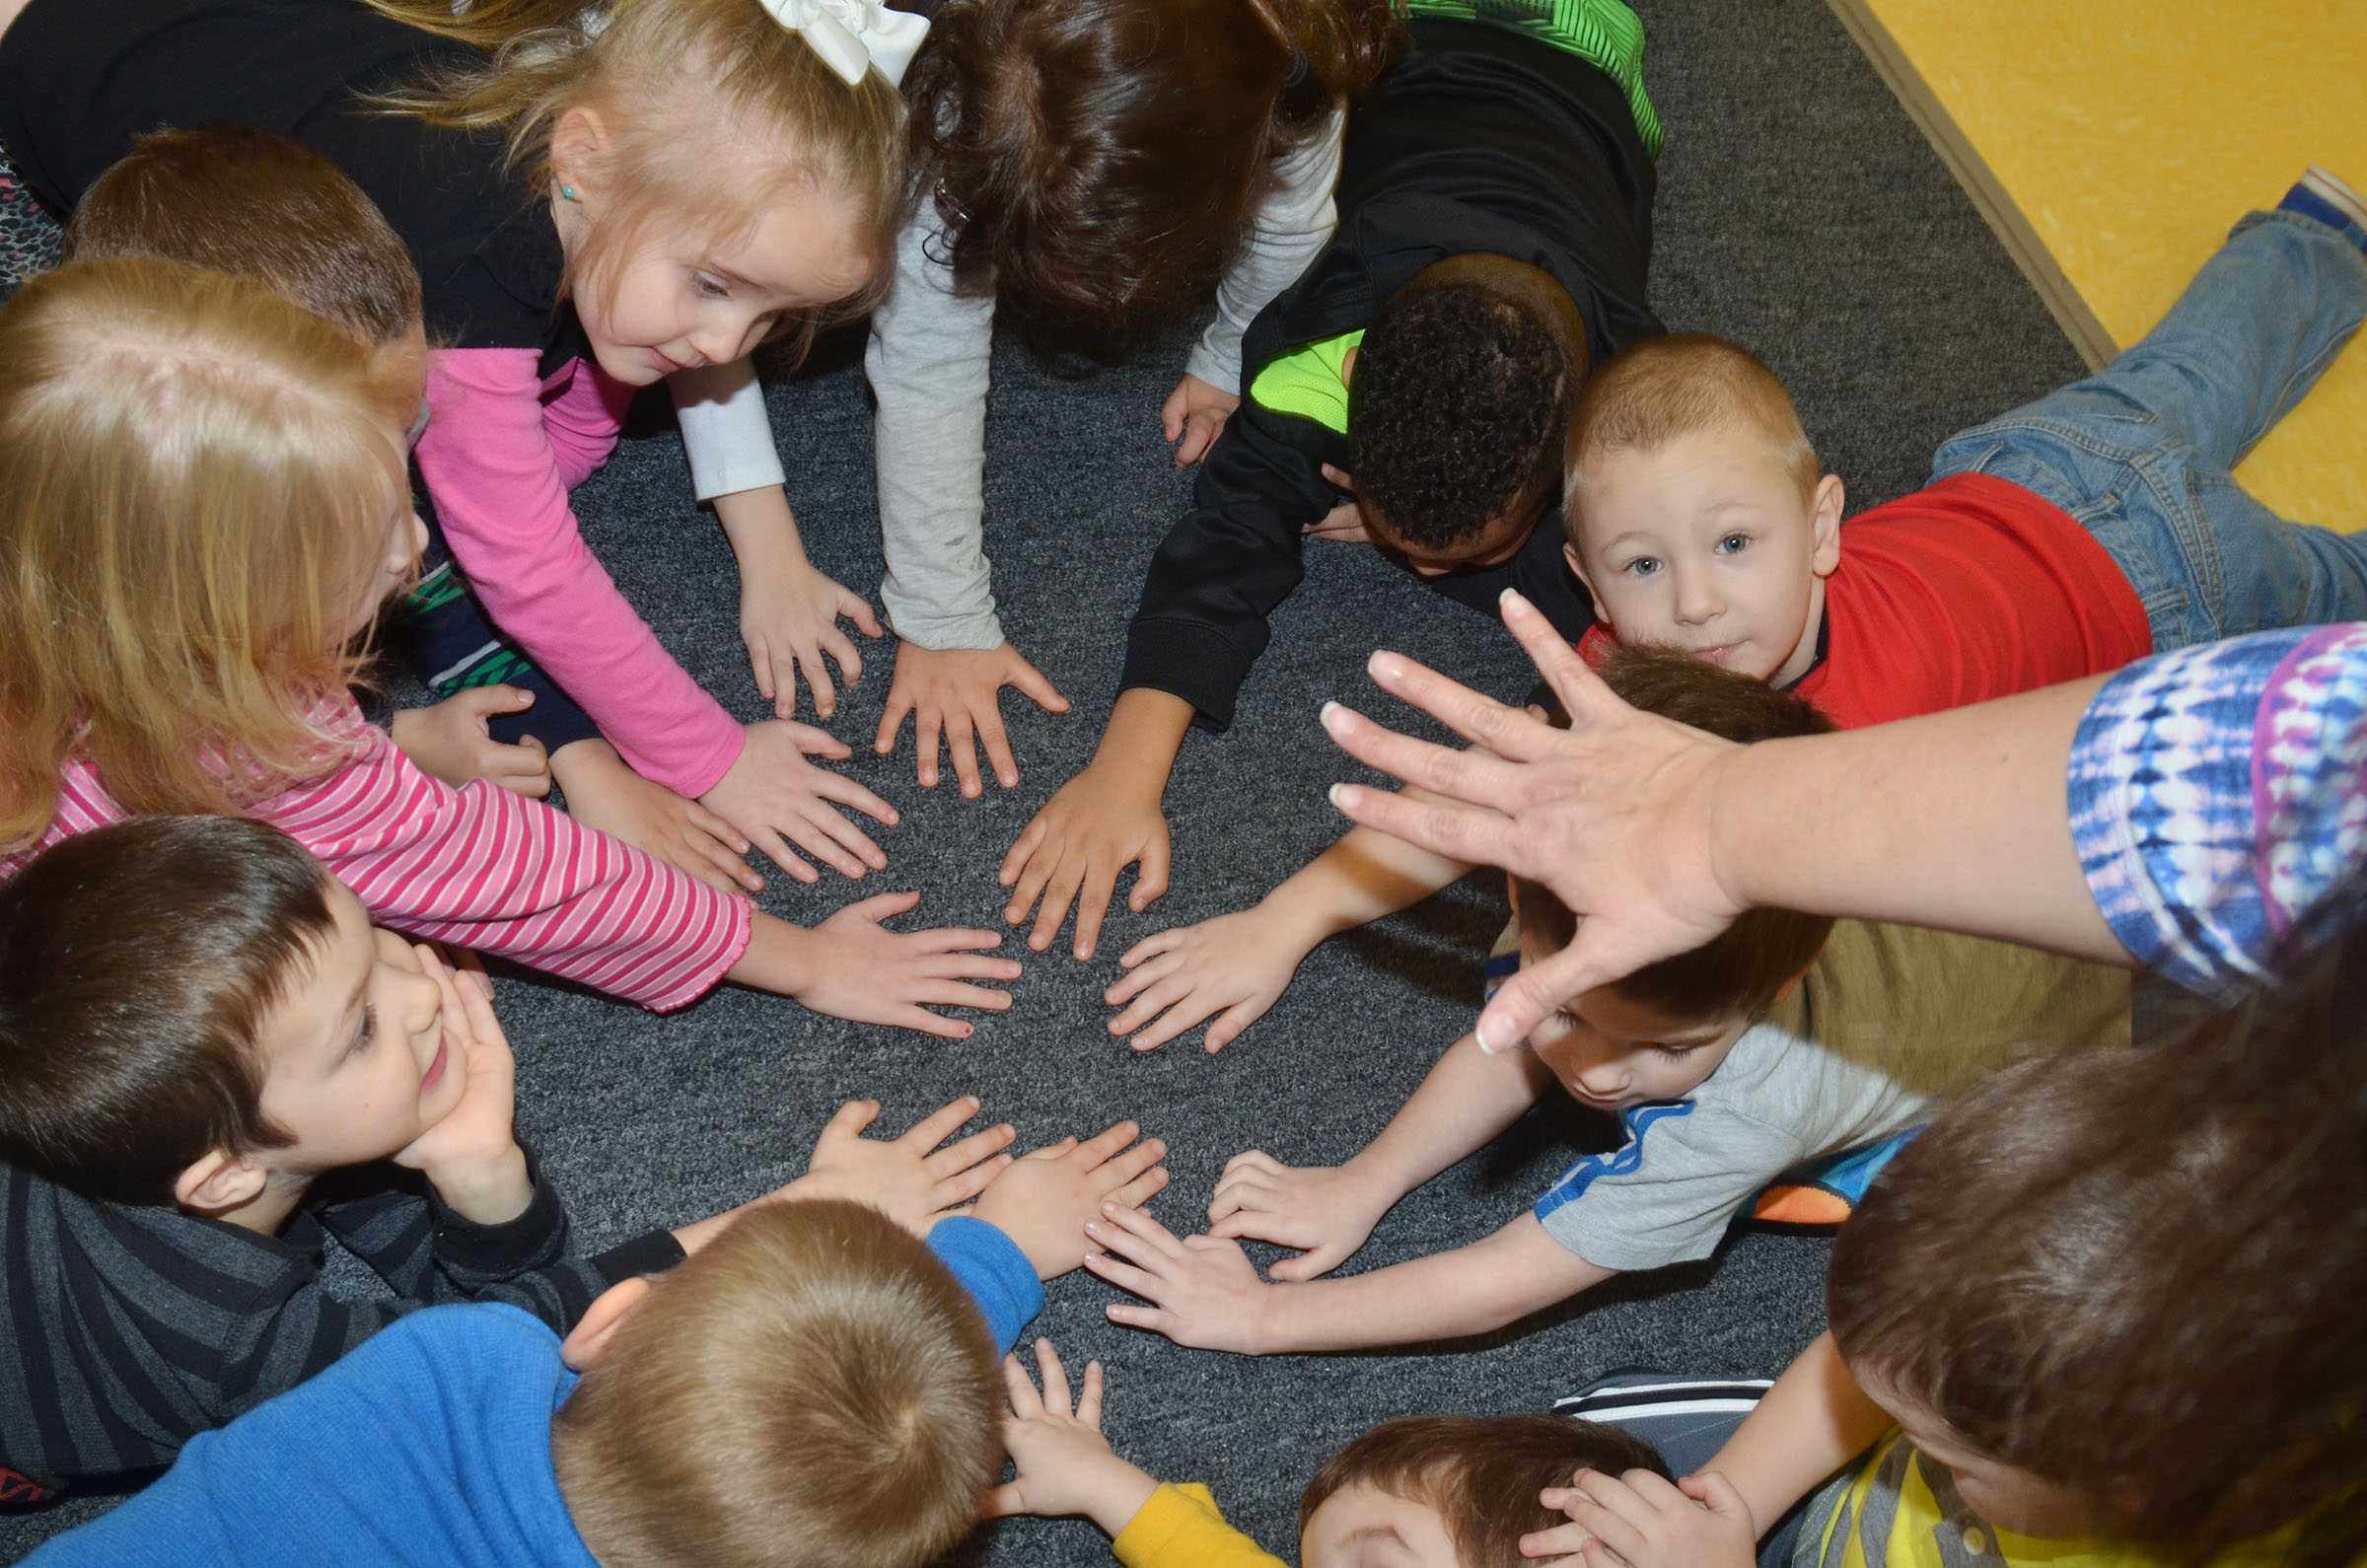 CES preschool teacher Sherry Cowherd places her hand in the circle of her students' hands, and asks them if any two people have the same skin color. Students agreed that they don't, but they are all equal and important.